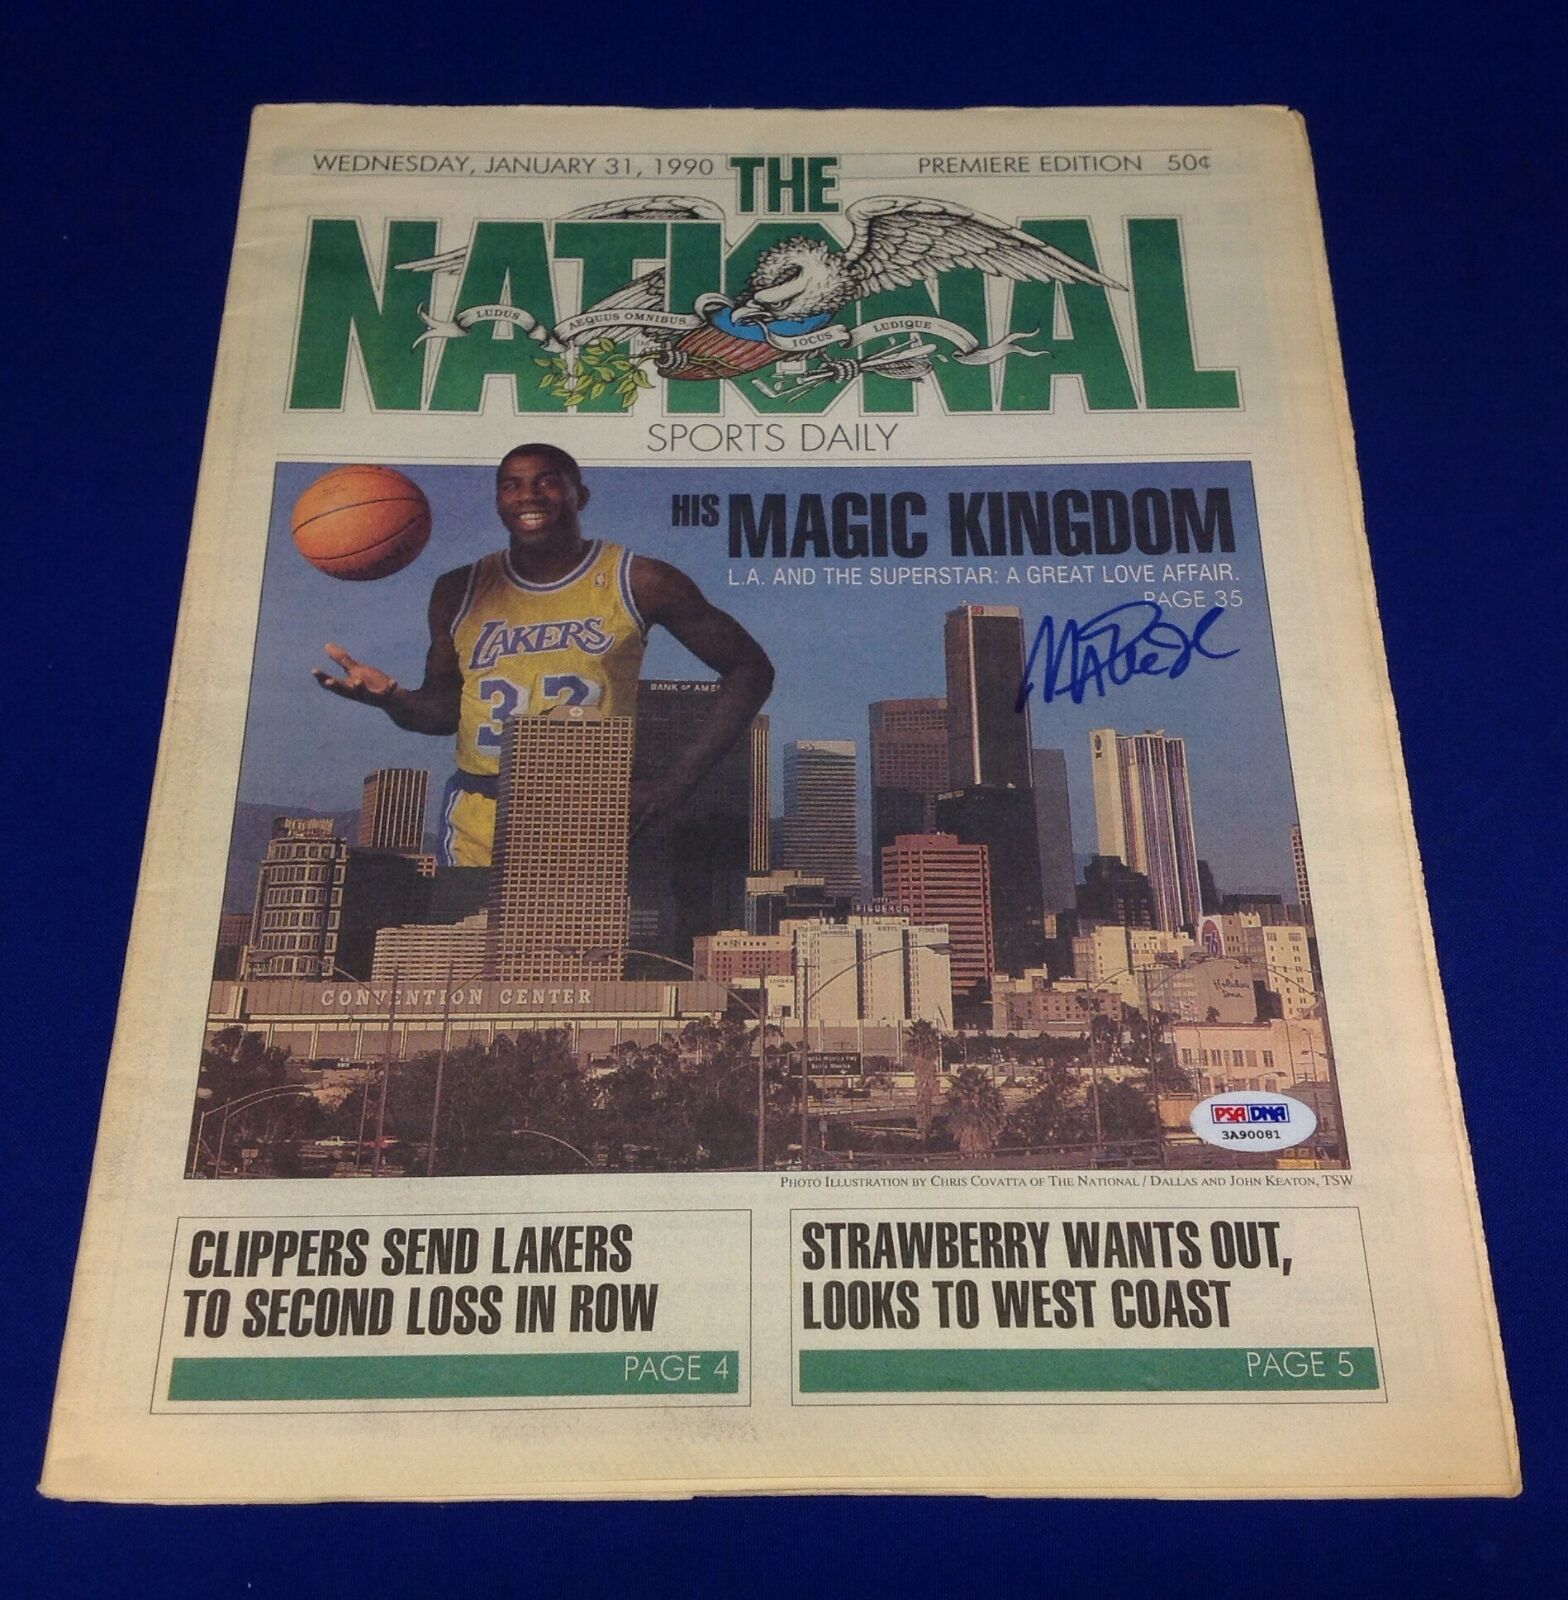 Magic Johnson signed The National Premiere Edition 1/31/1990 PSA/DNA # 3A90081